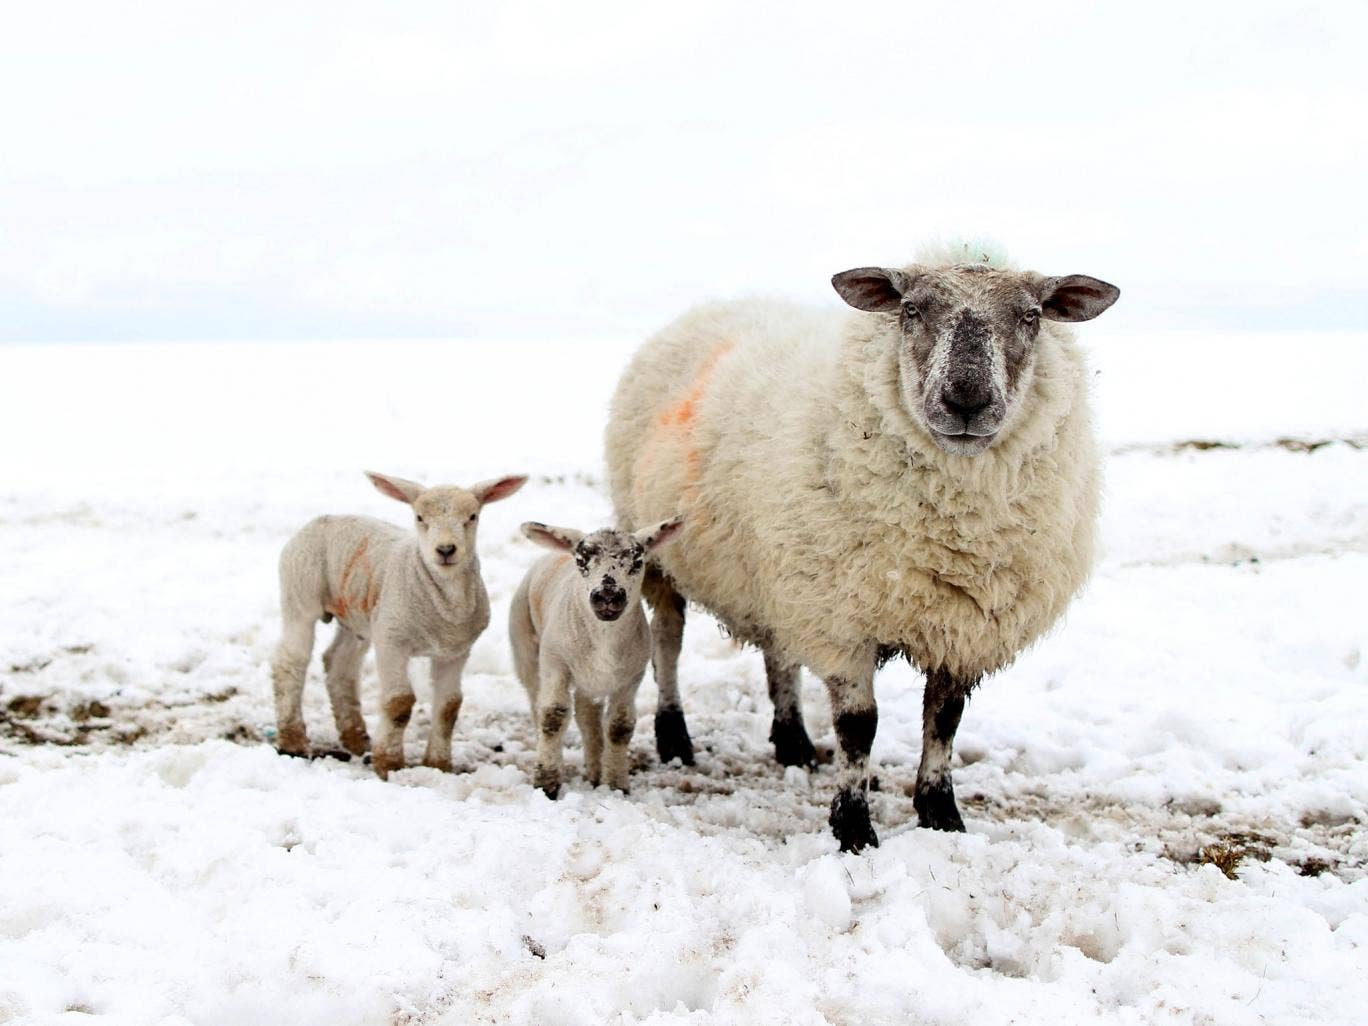 A sheep and her lambs in Northern Ireland, where up to 10,000 animals were buried in snowdrifts